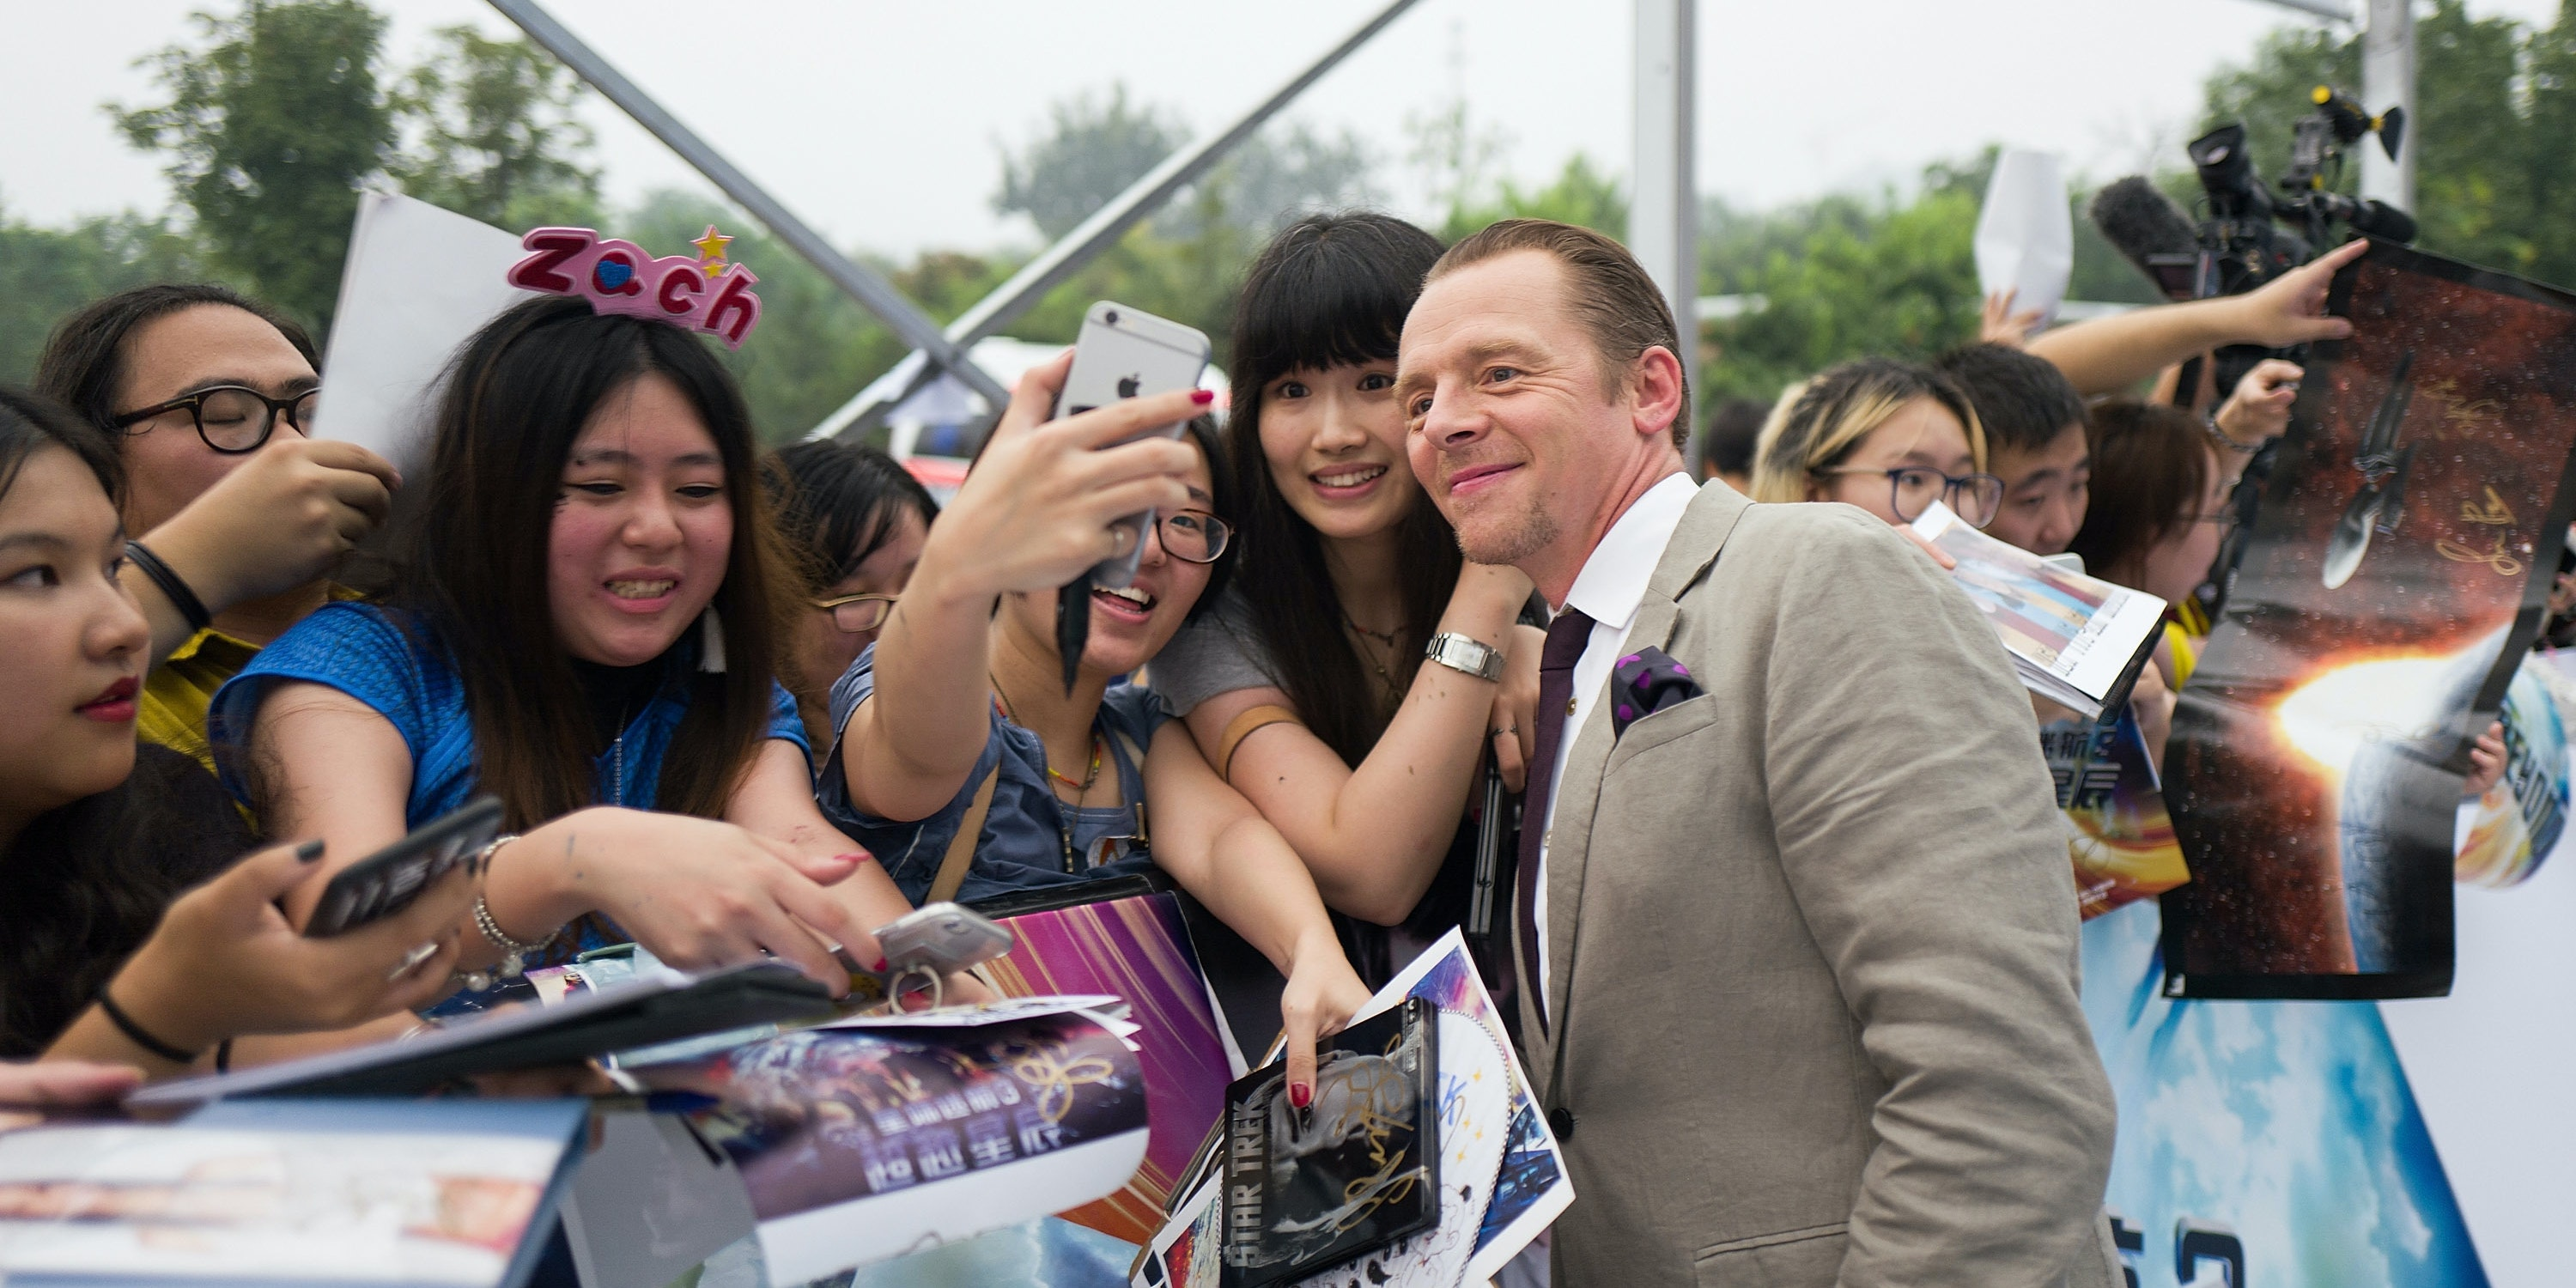 BEIJING, CHINA - AUGUST 18:  Actor Simon Peg attends the red carpet event of the Paramount Pictures title 'Star Trek Beyond' on August 18, 2016 at Indigo Mall in Beijing, China.  (Photo by Xiaolu Chu/Getty Imagesfor Paramount Pictures)